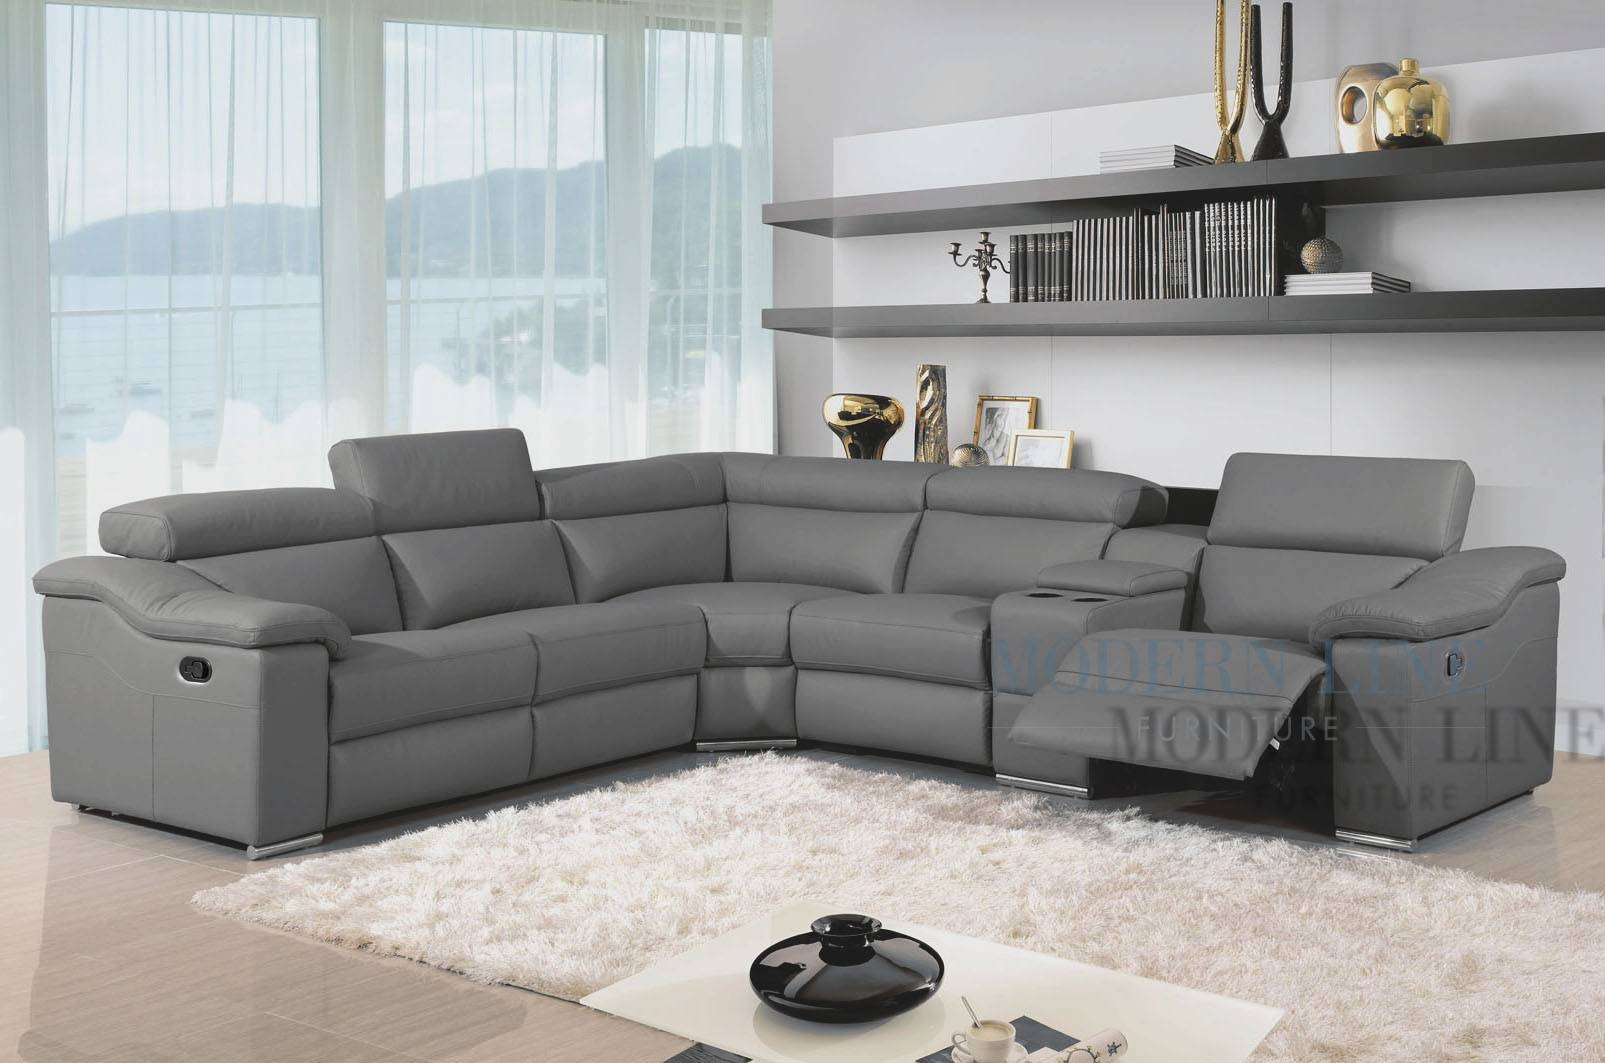 Cindy Crawford Home Palm Springs Gray 4 Pc Sectional 117W X 1525D with regard to Cindy Crawford Sofas (Image 10 of 30)